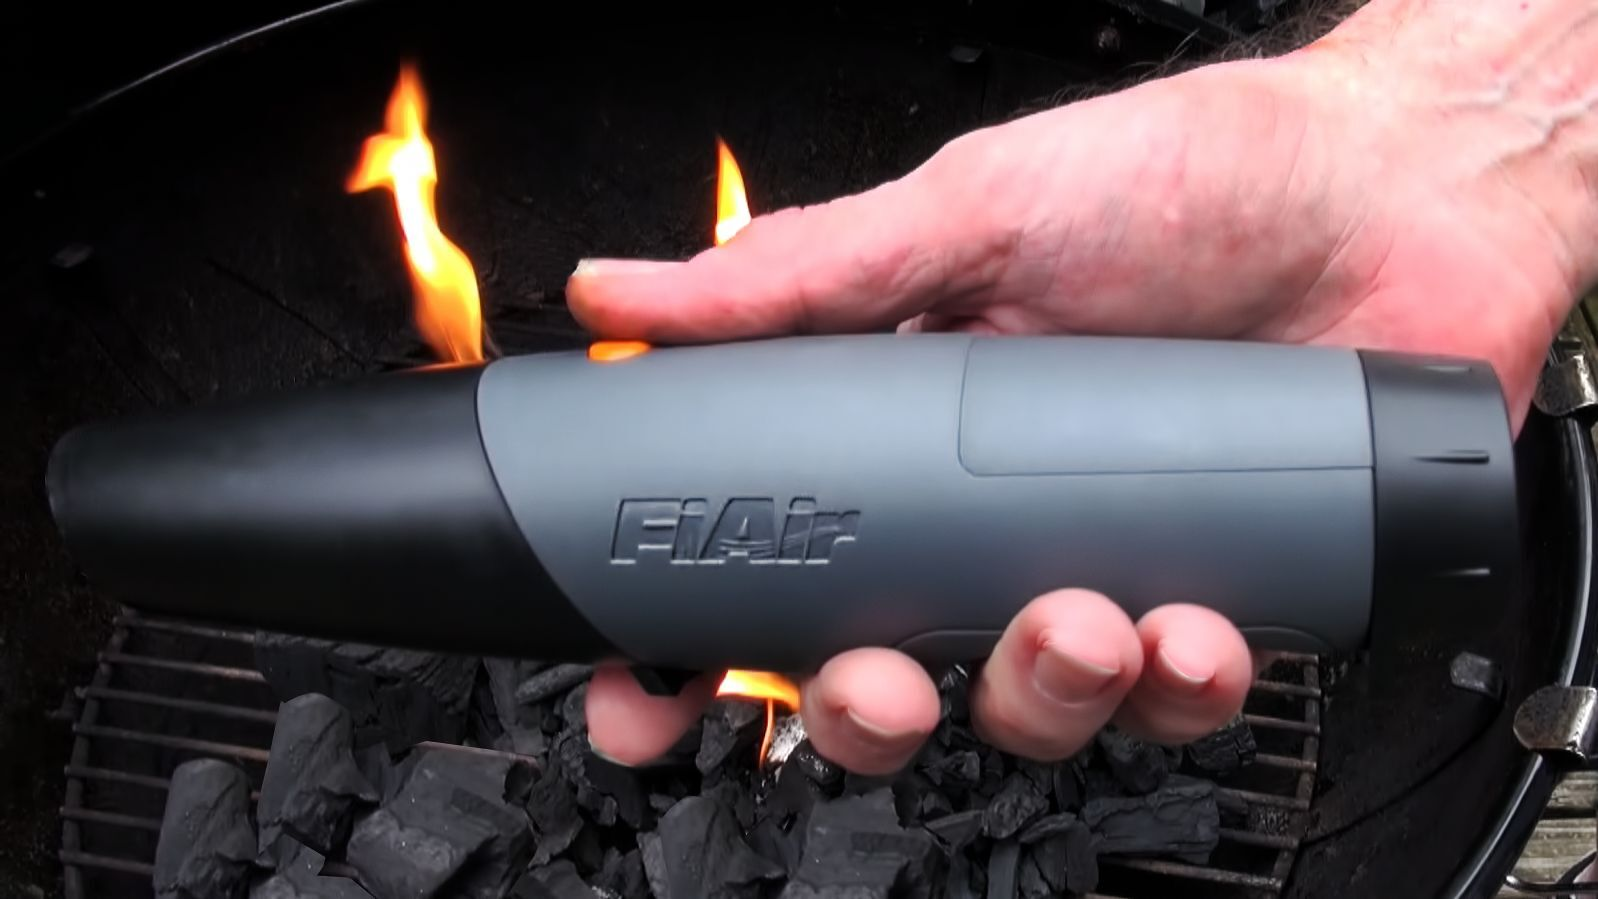 FiAir—Air Blower/Fast Fire Starter for Charcoal Grill, BBQ